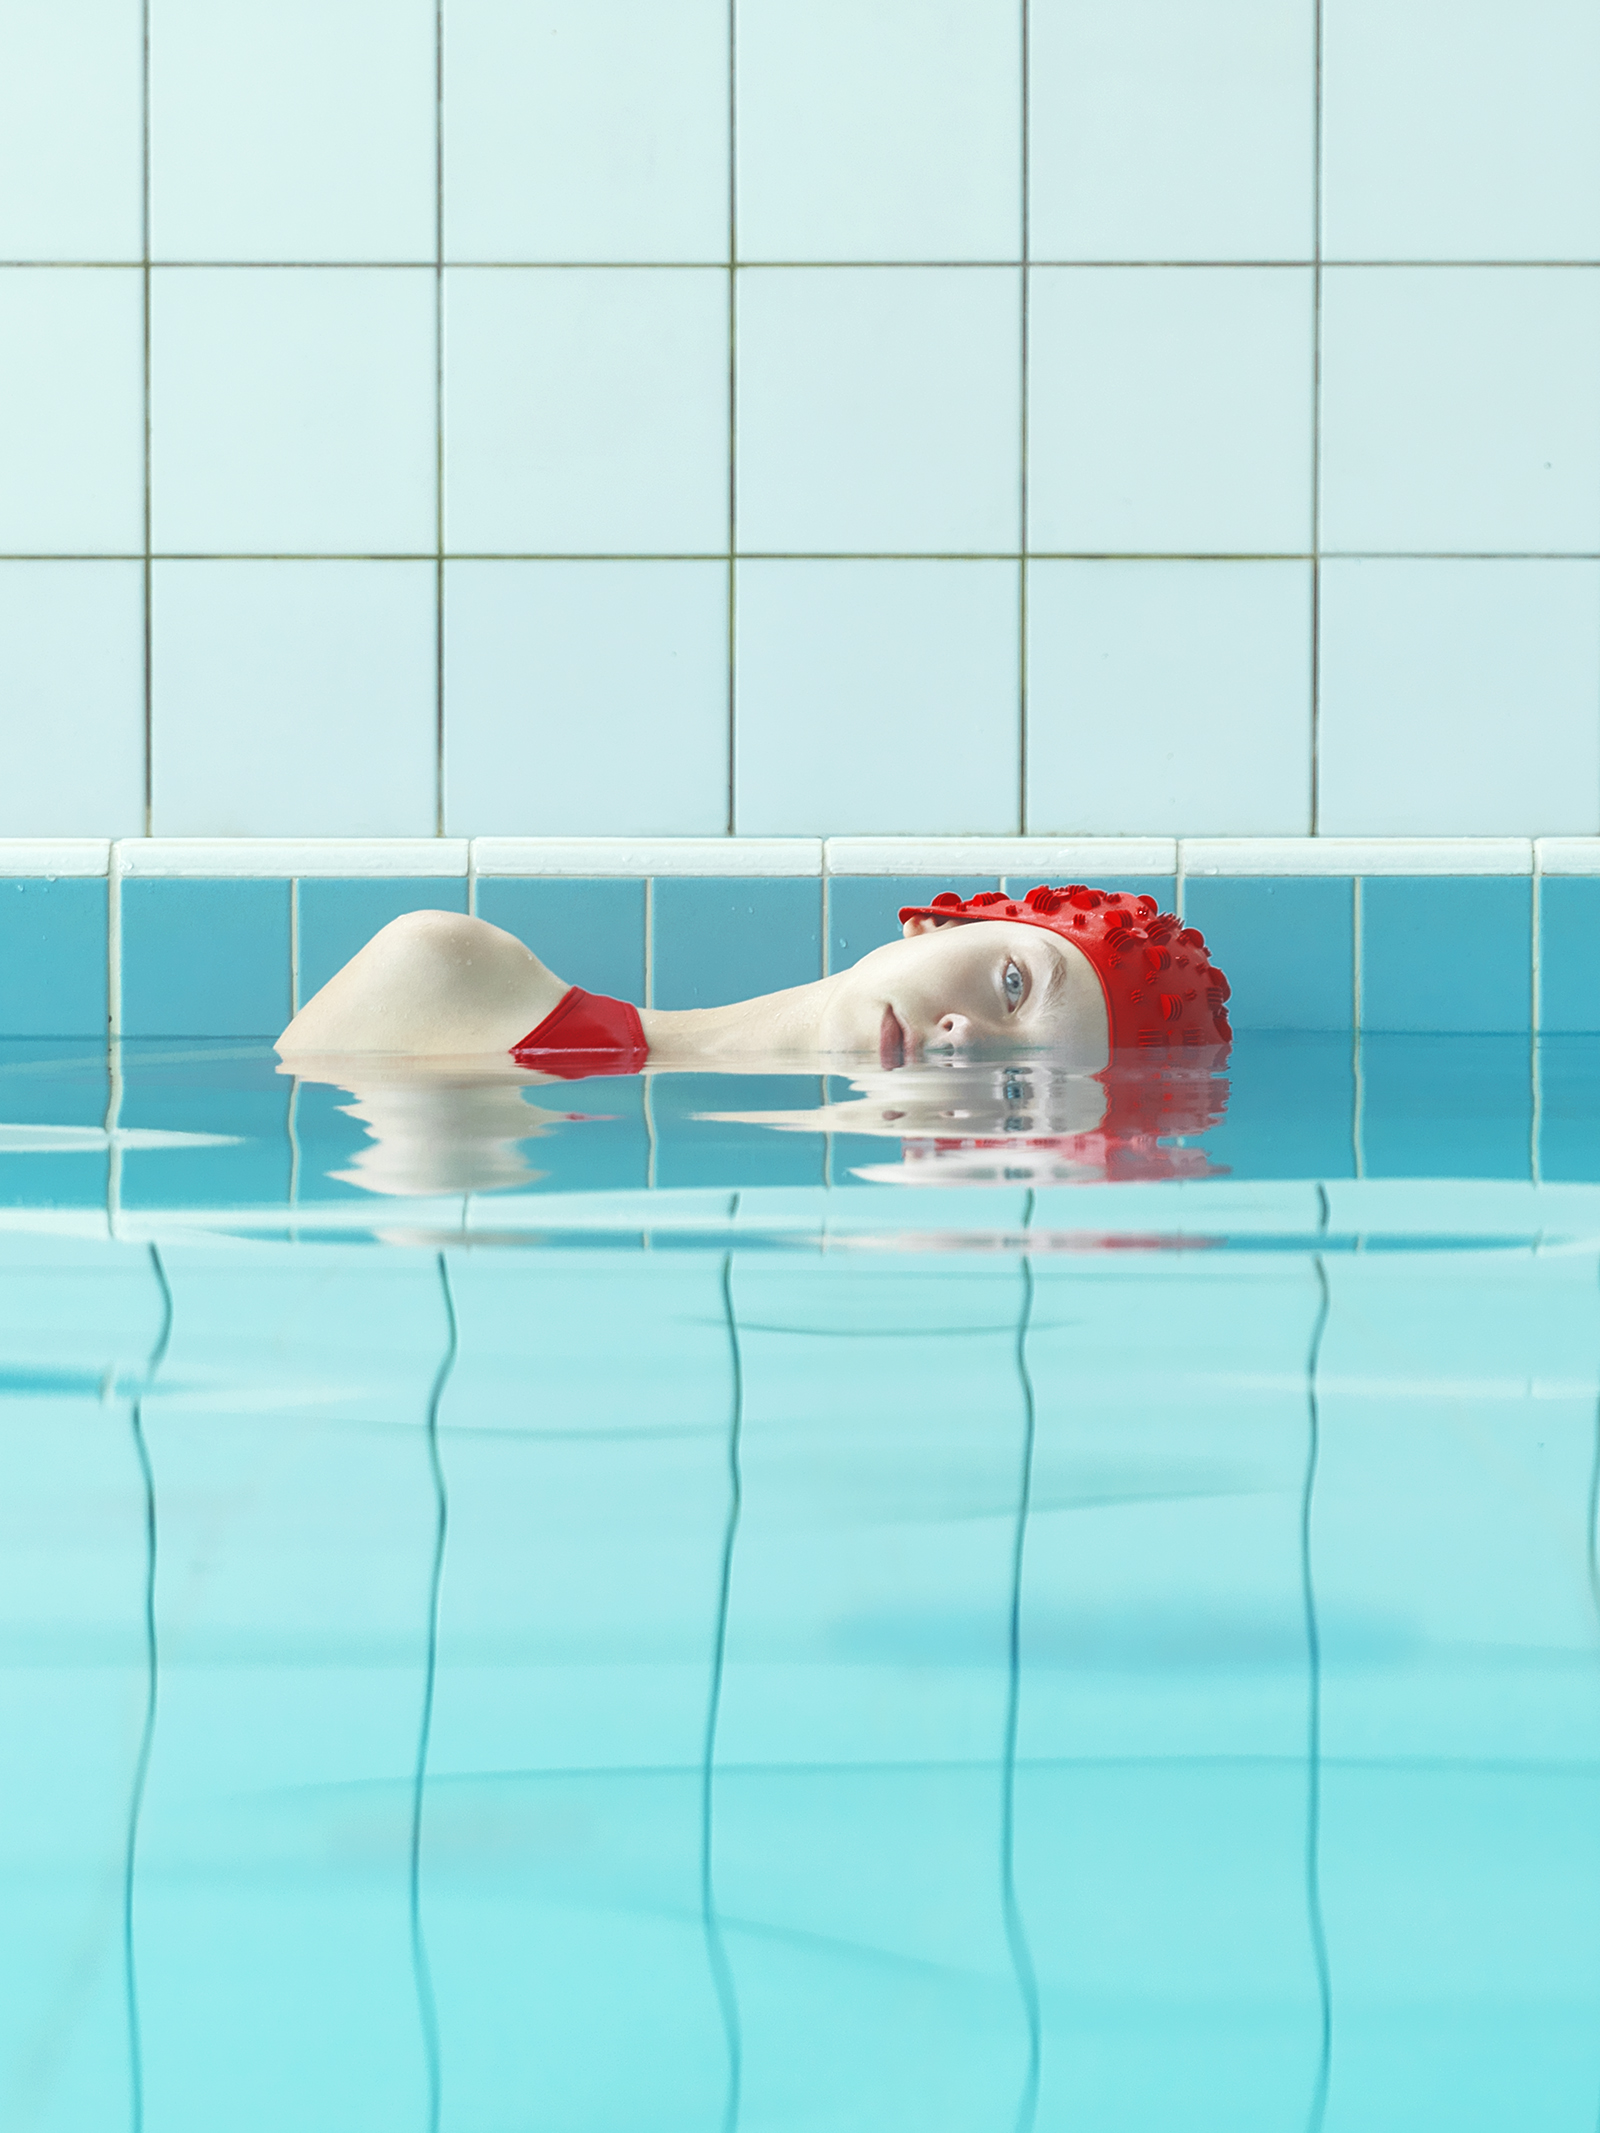 Maria Švarbová finds beauty and serenity in swimming pools - CNN Style